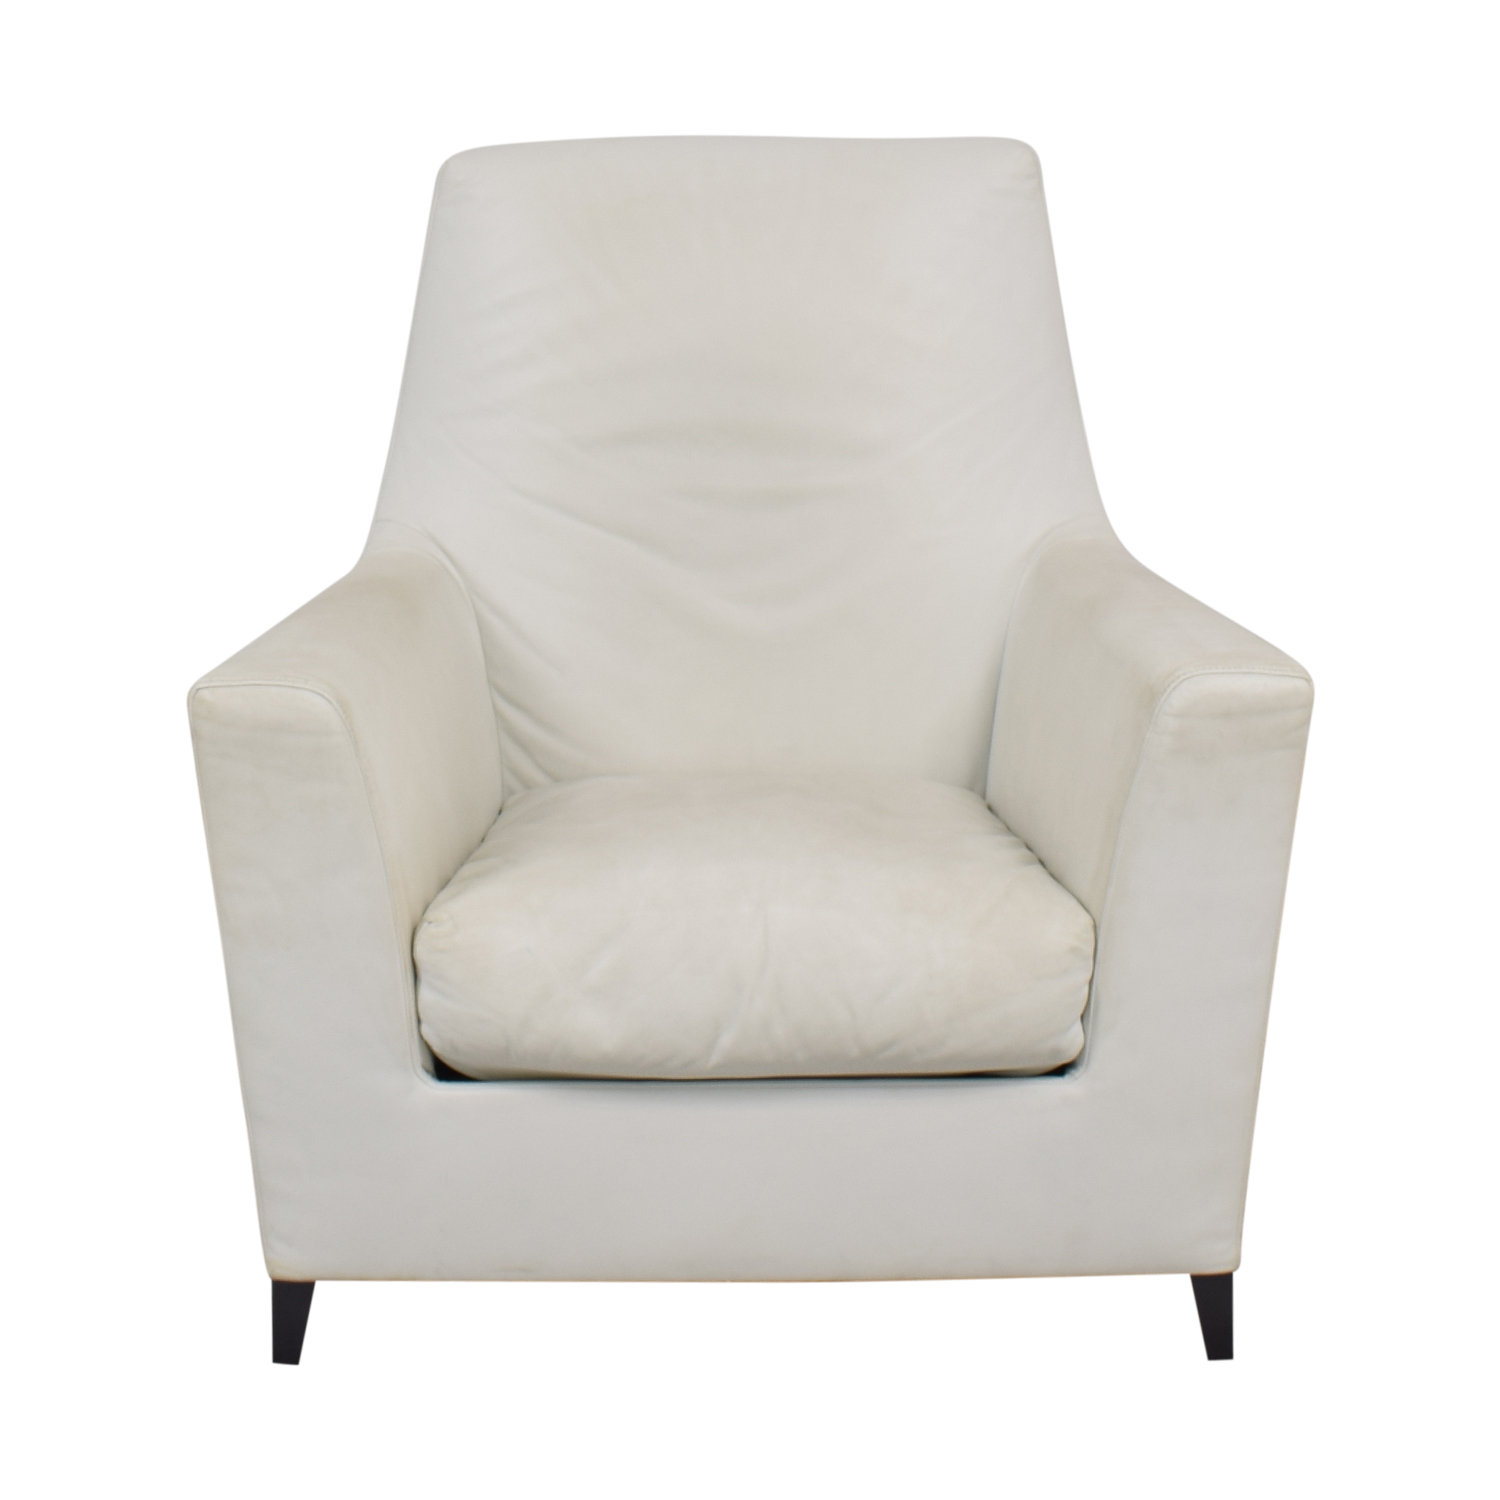 shop Ligne Roset Rive Droite High Back Arm Chair Ligne Roset